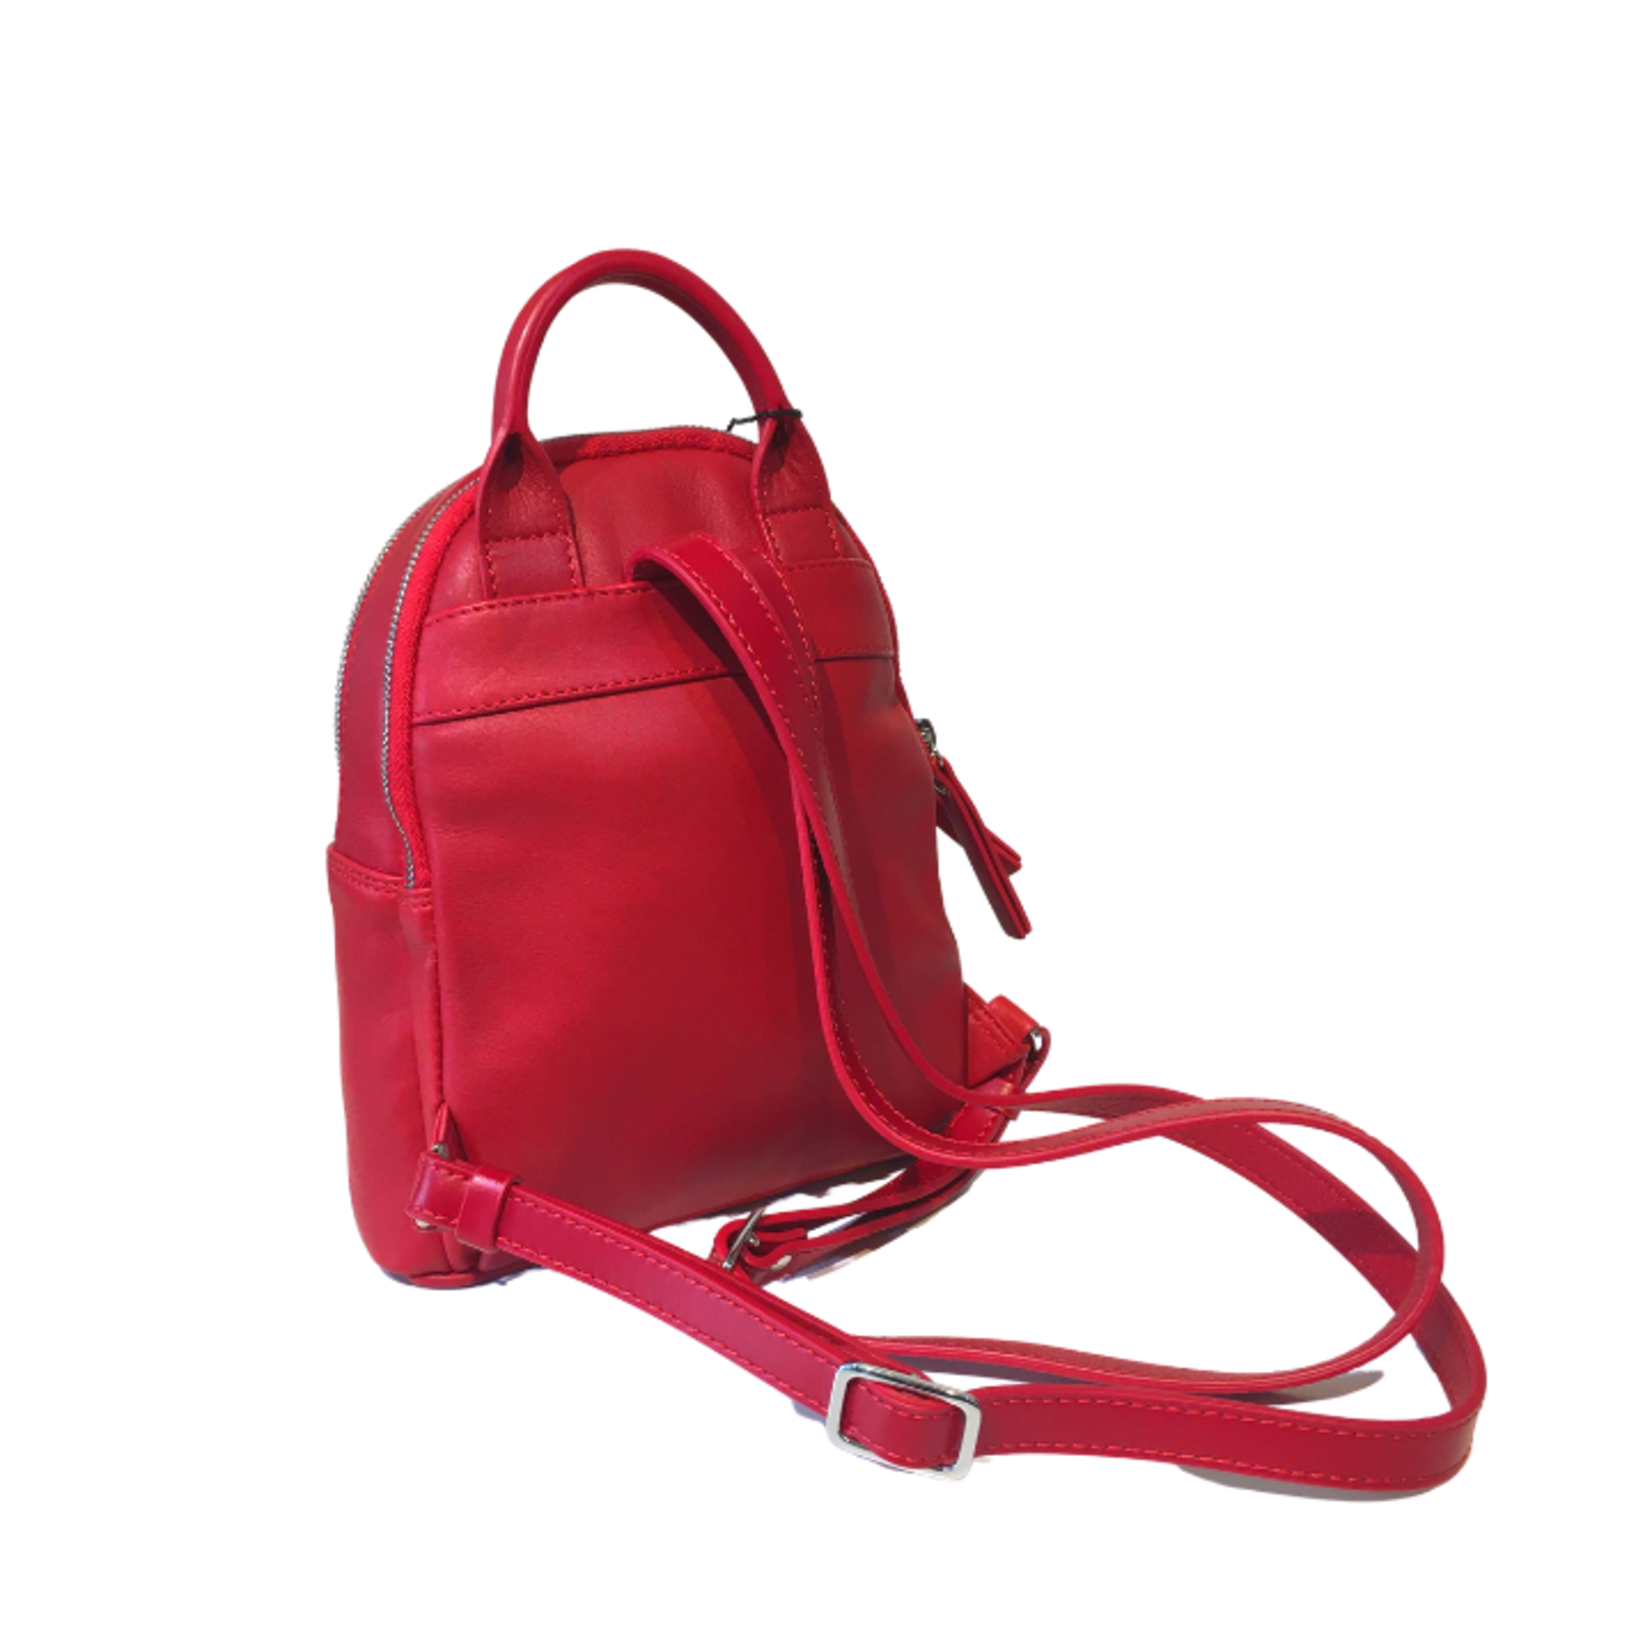 The Trend 584534 red